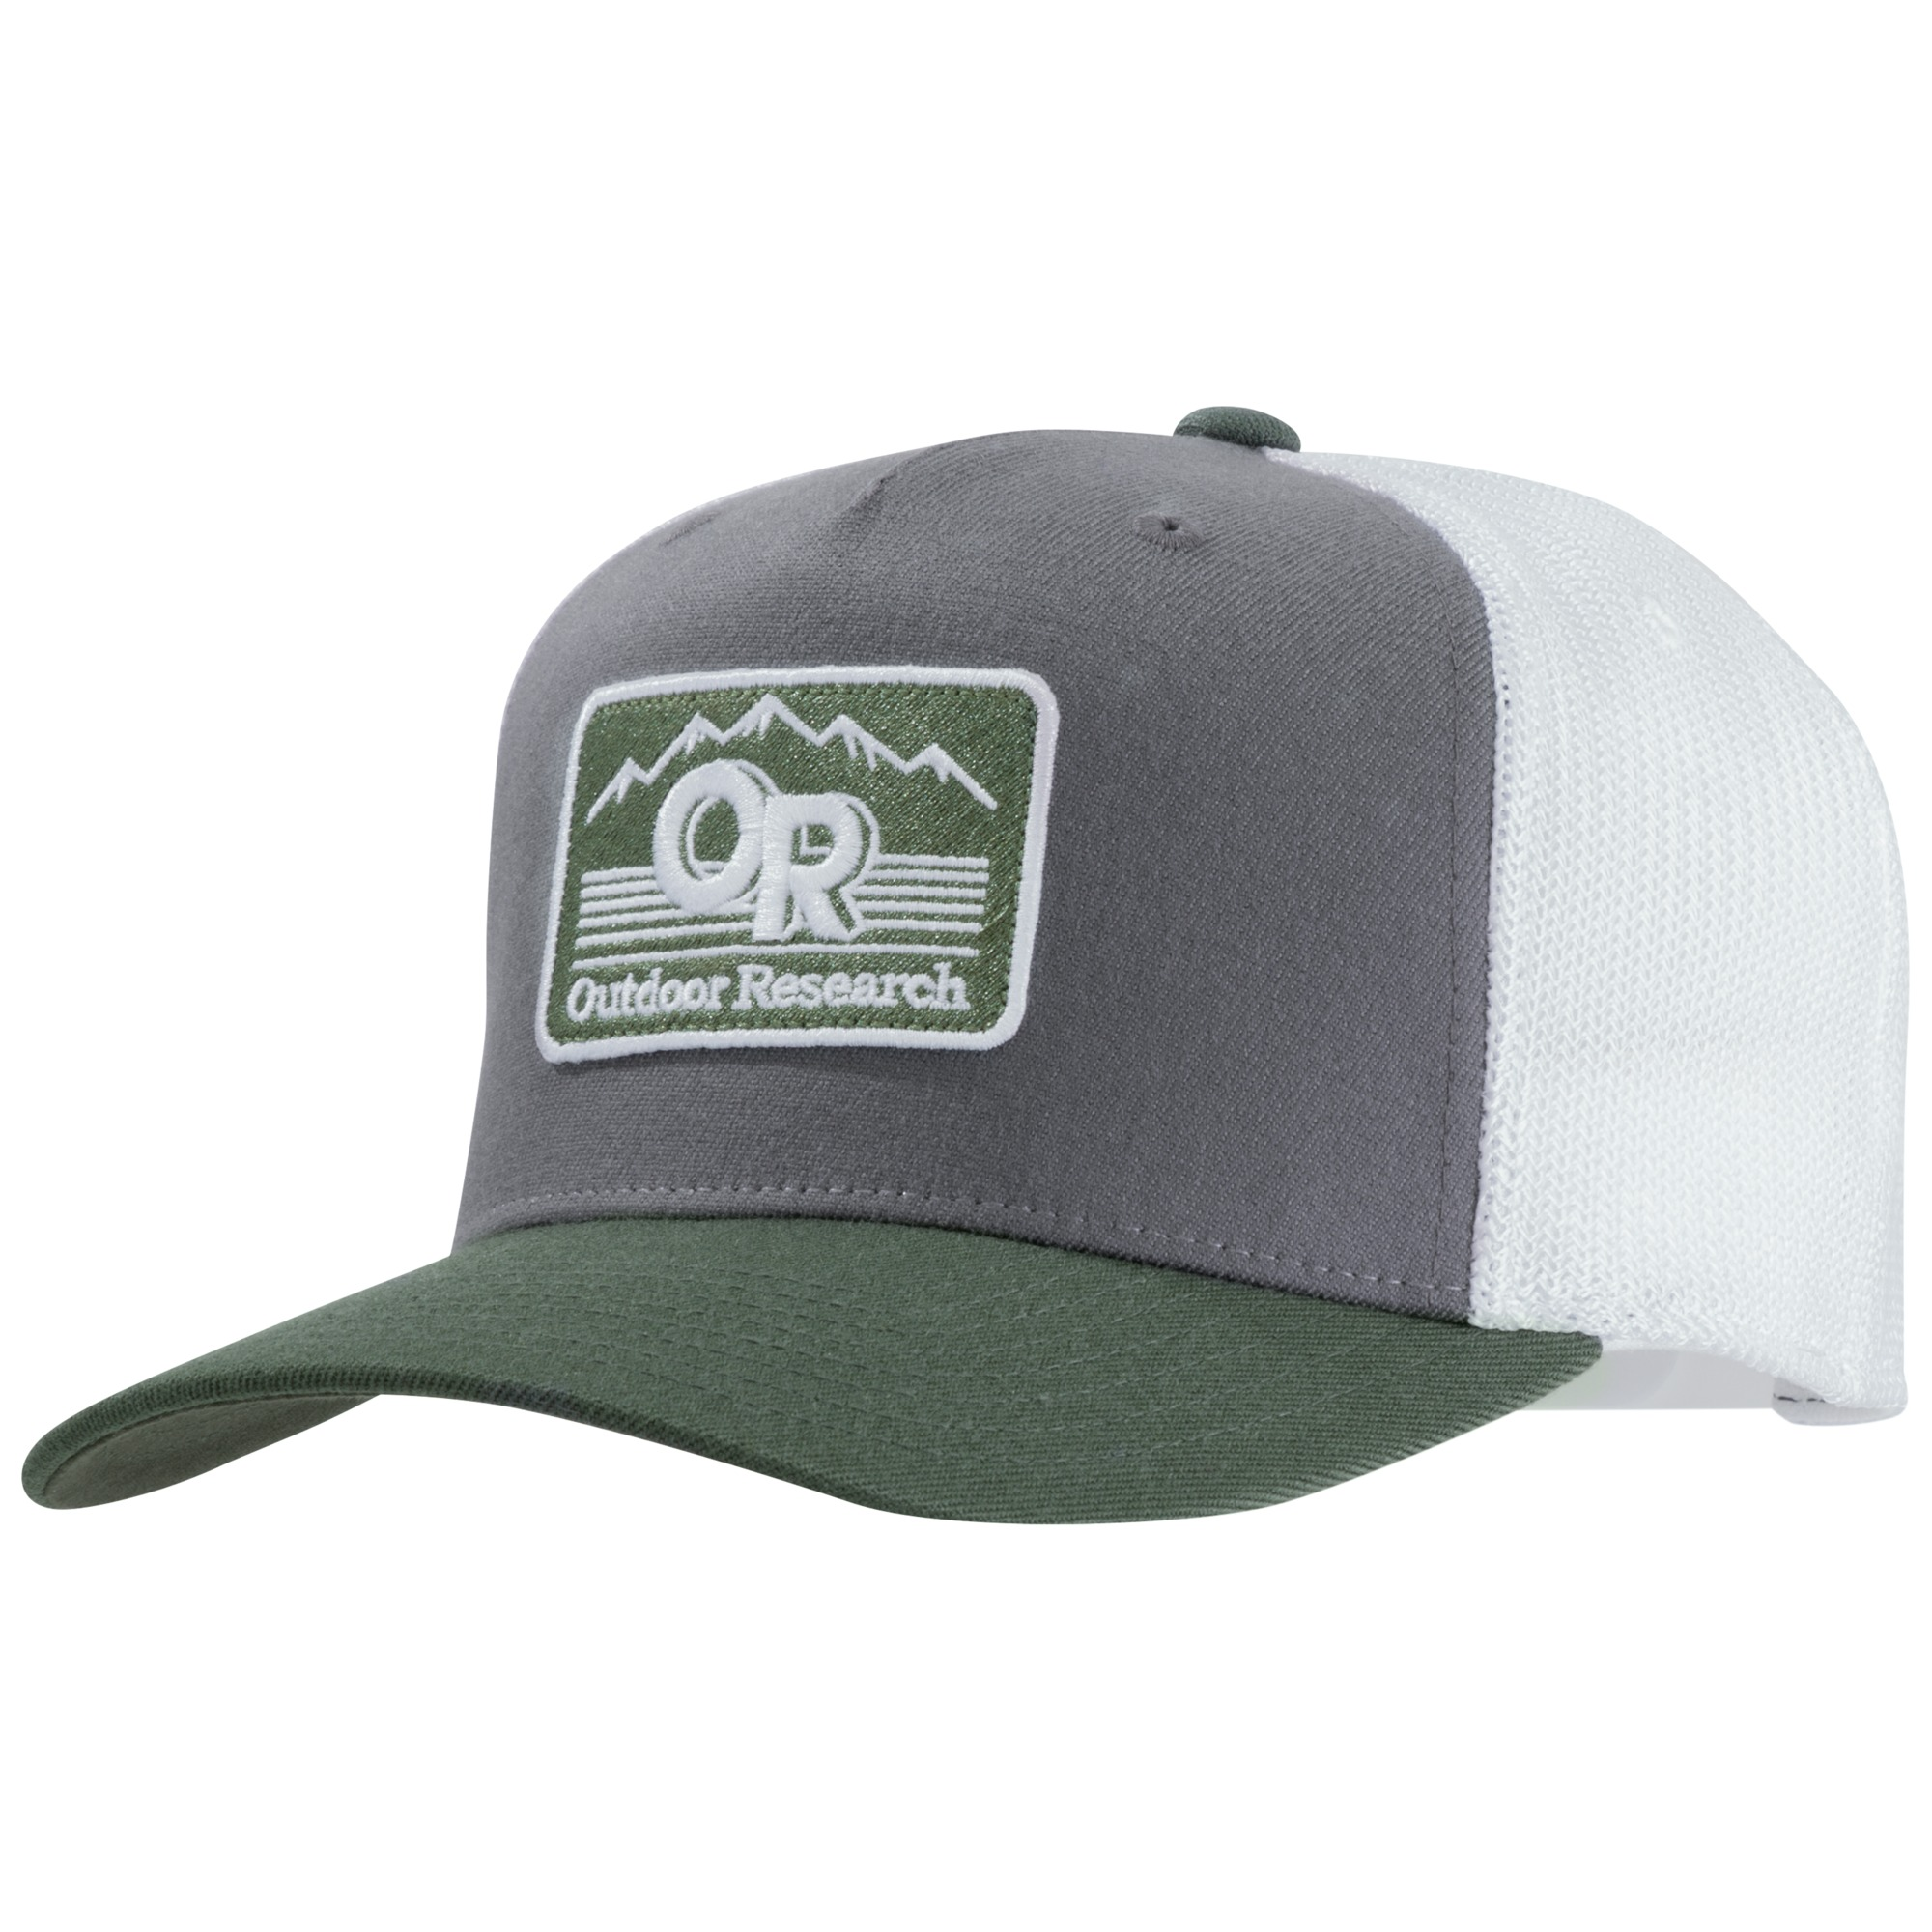 501fcc1d268 Advocate Trucker Cap - moss | Outdoor Research